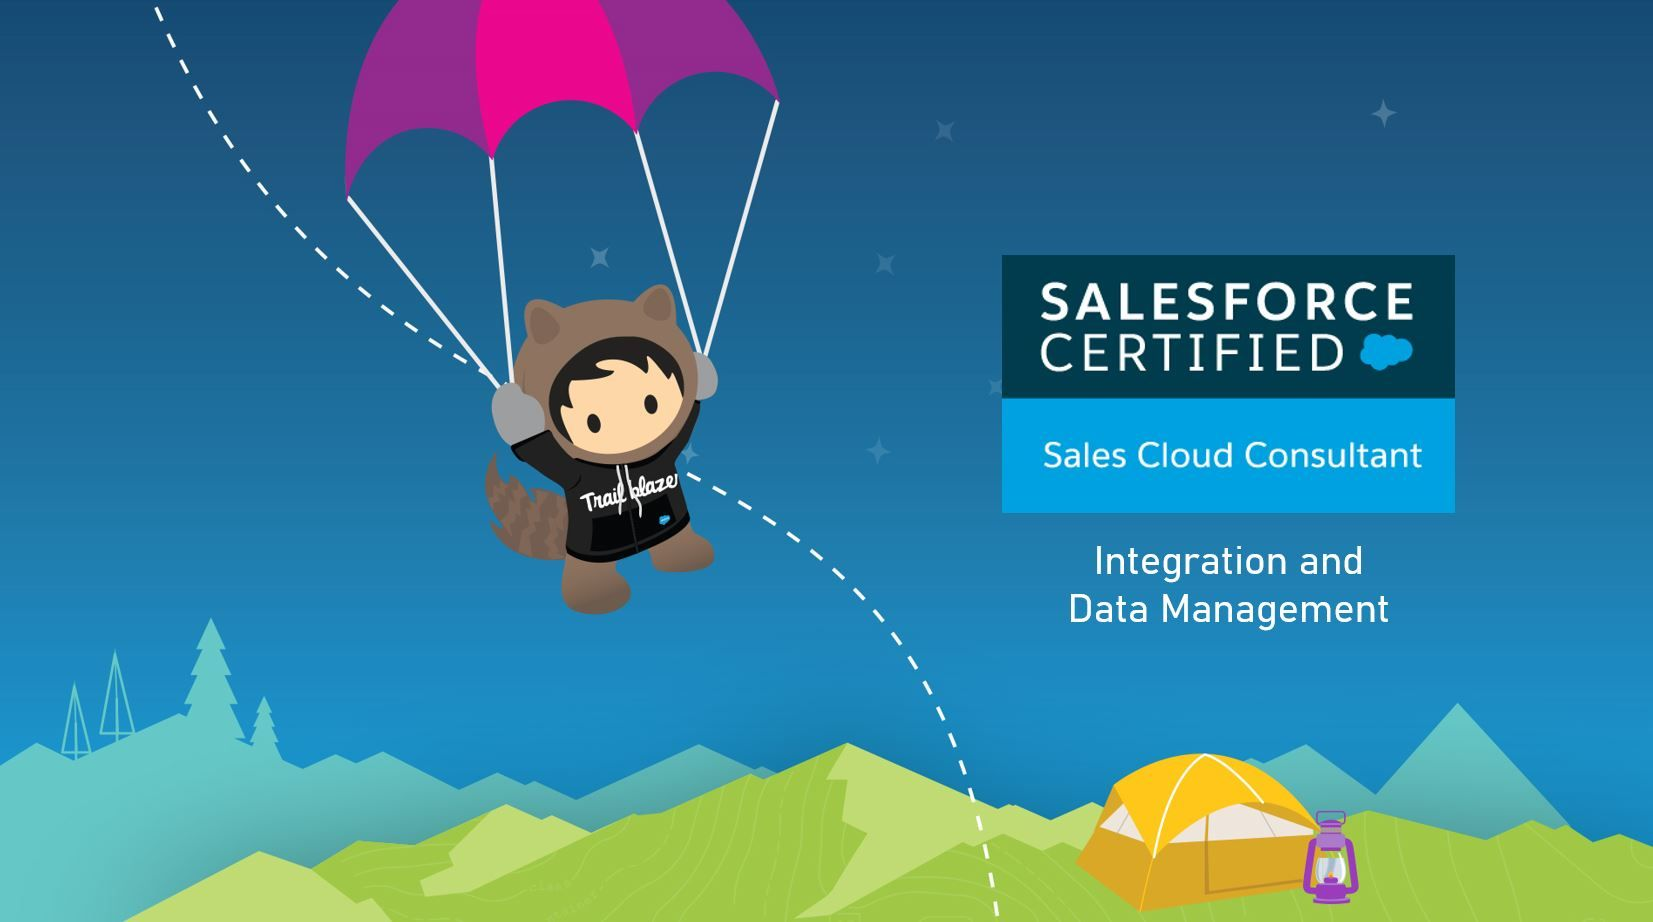 Salesforce Sales Cloud Consultant Exam Preparation: Integration and Data Management